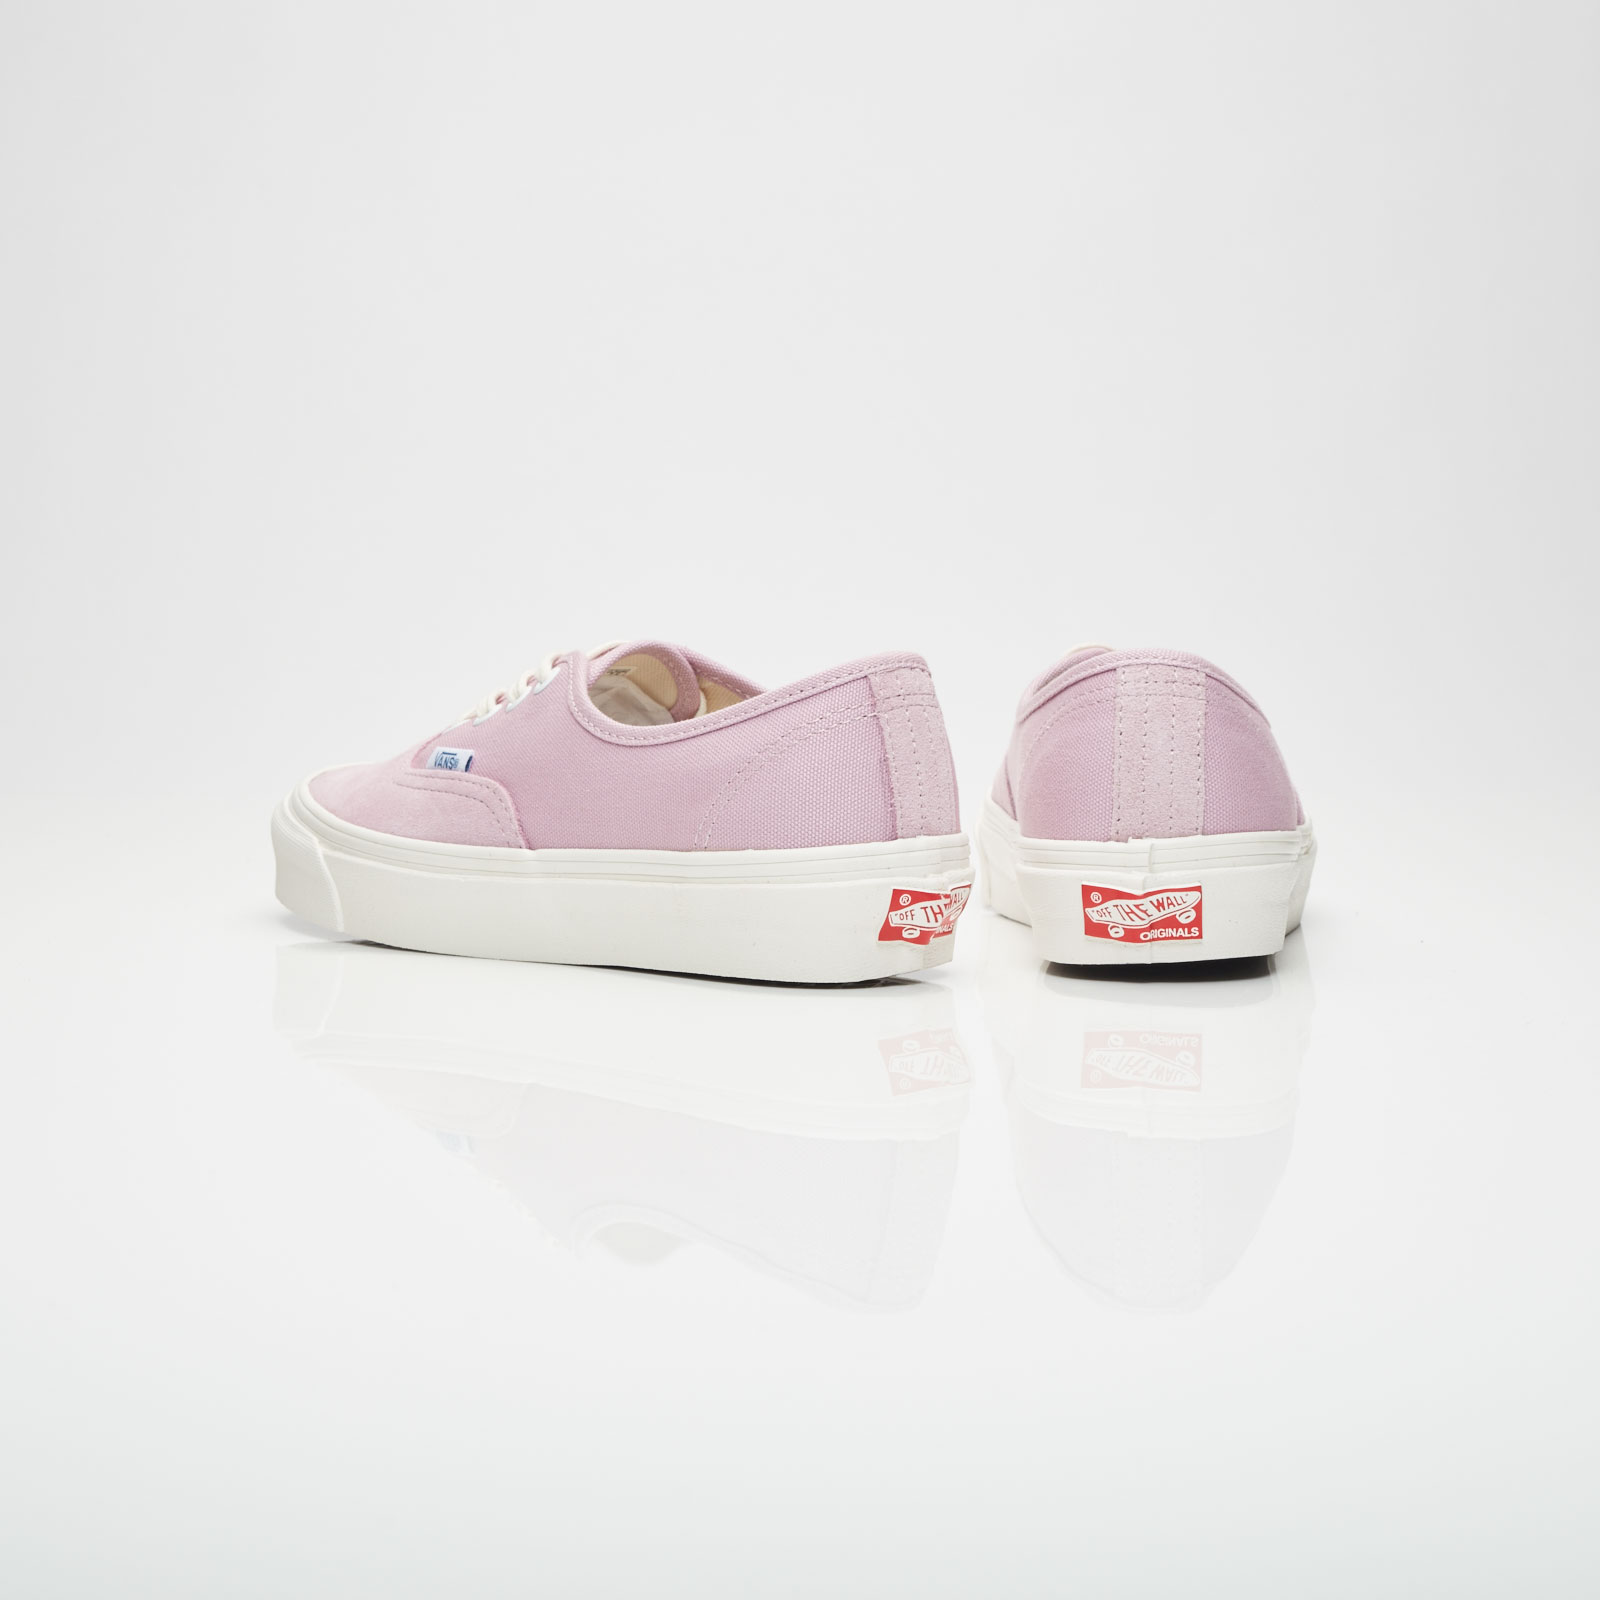 fae1265802 Vans UA OG Authentic LX - V00uddn8n - Sneakersnstuff